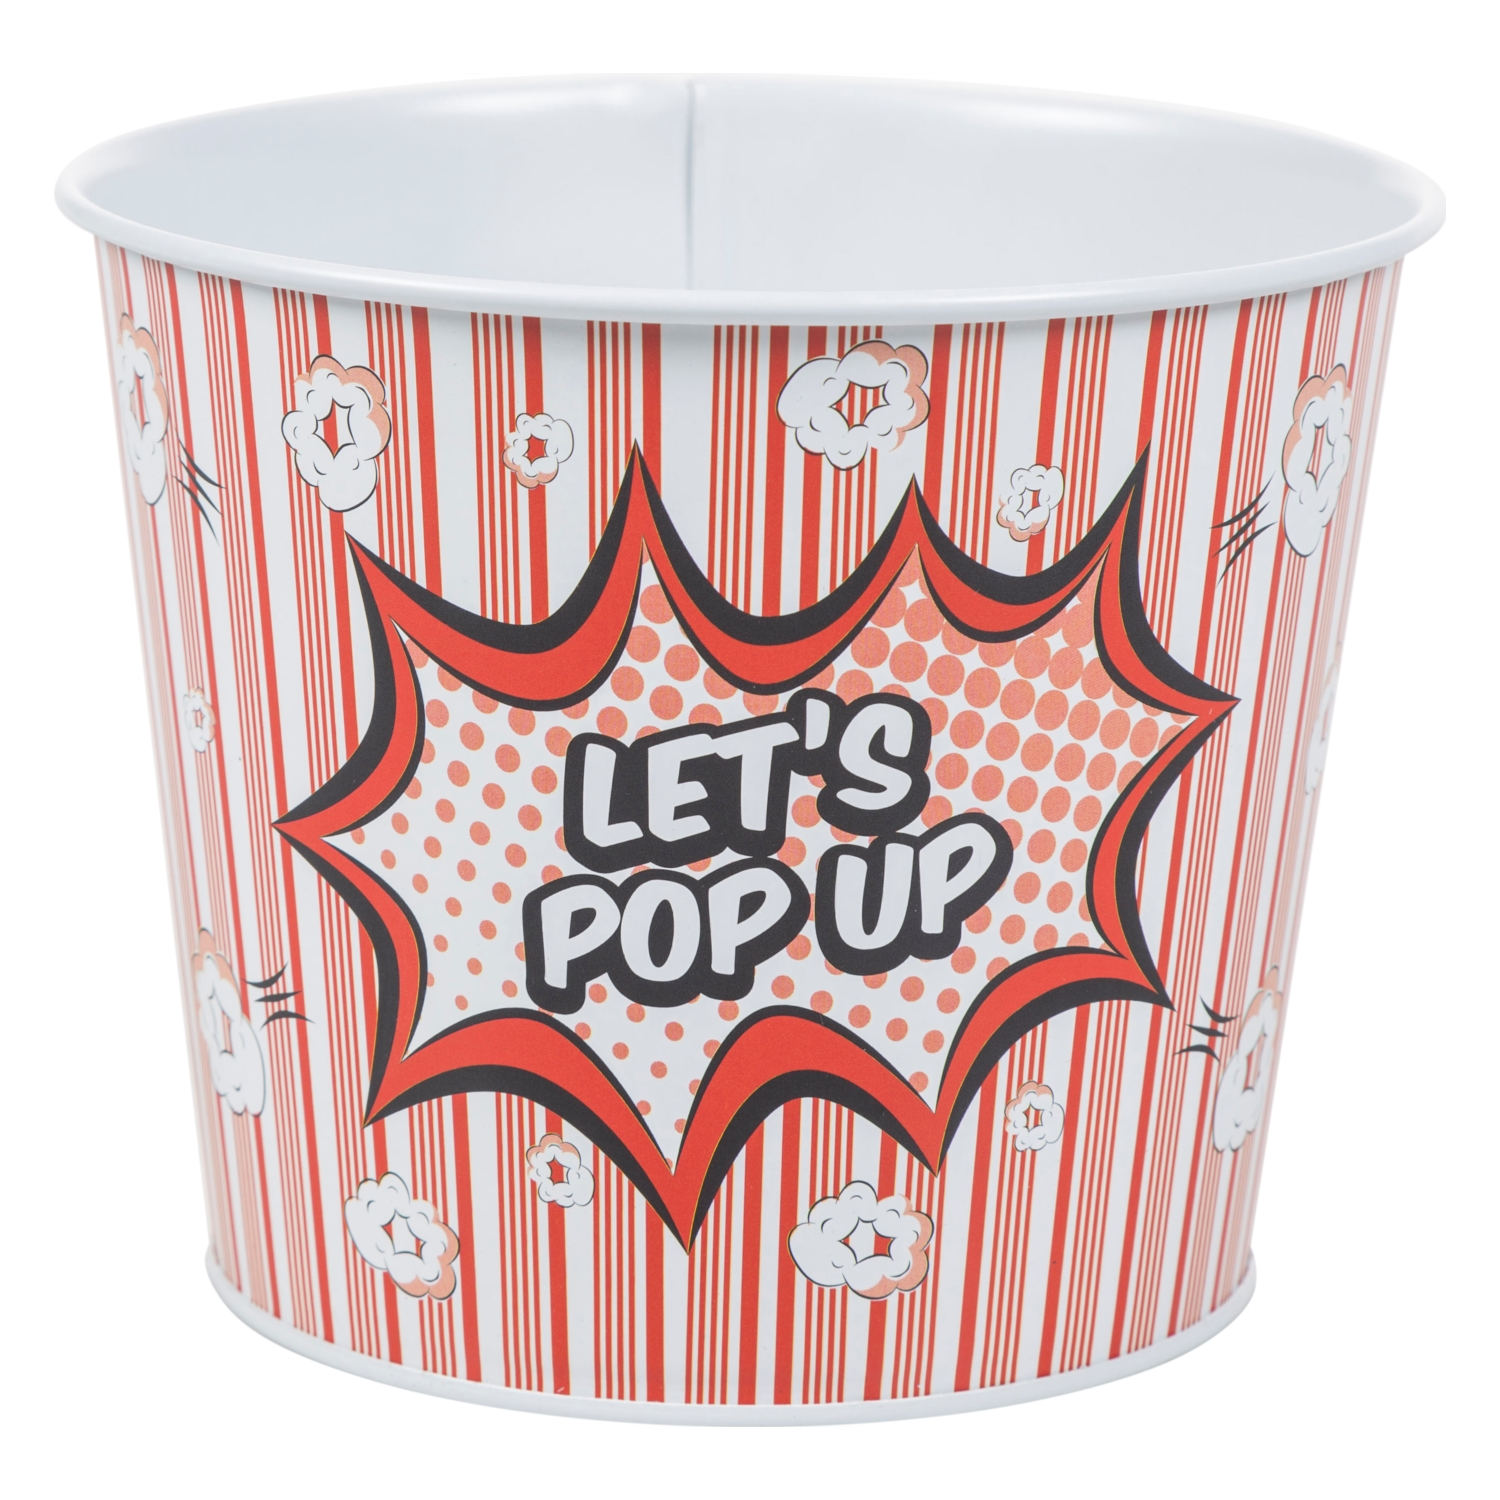 POPCORN KOVASI LET'S POP UP - KÜÇÜK